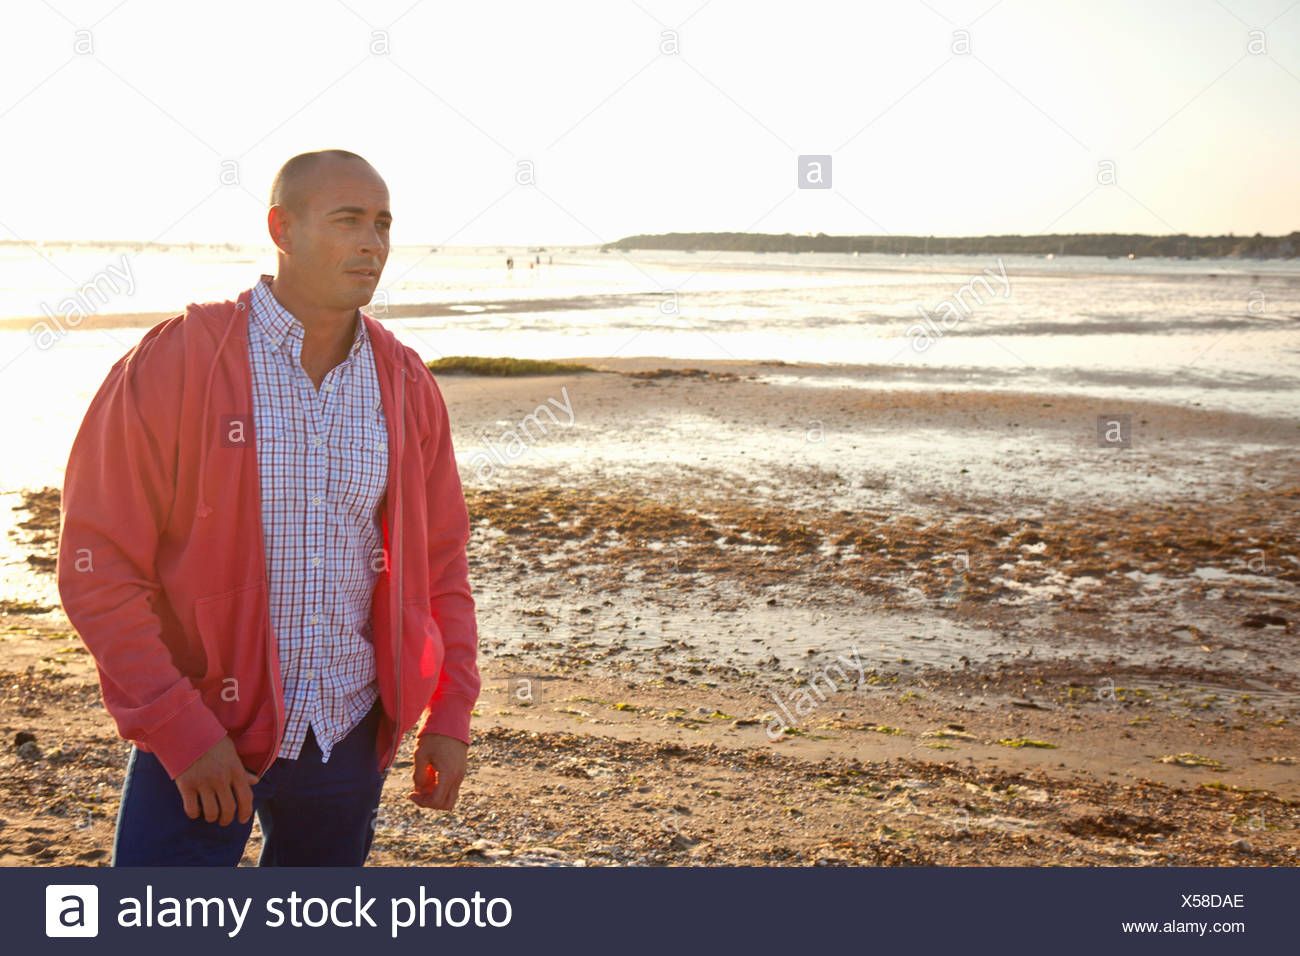 Man looking into distance on beach - Stock Image